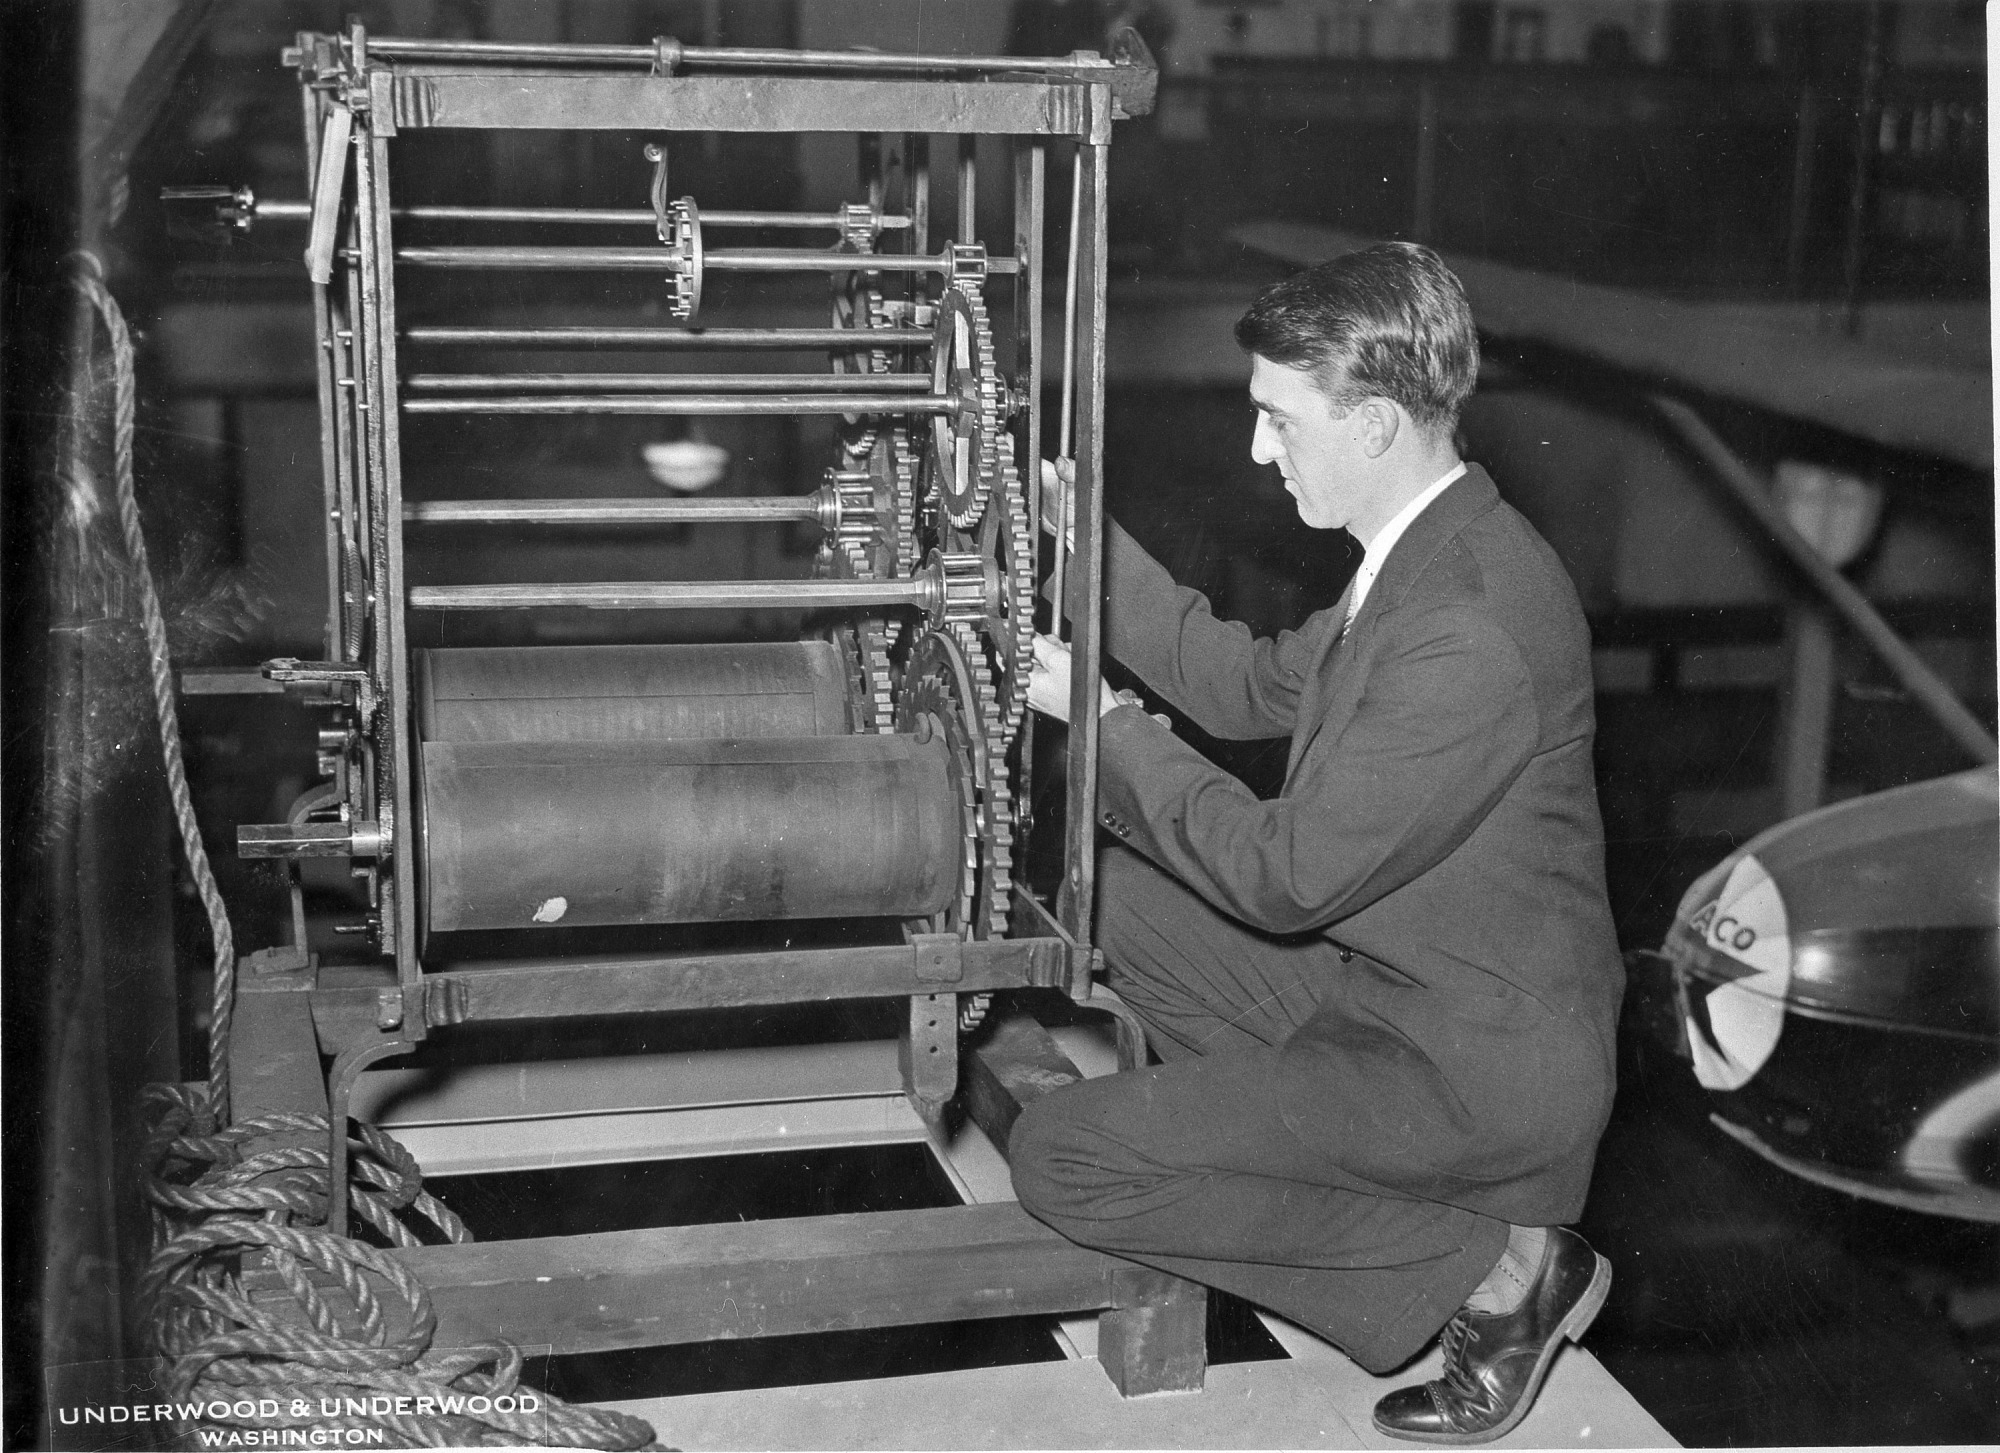 Frank A. Taylor Working on a Press